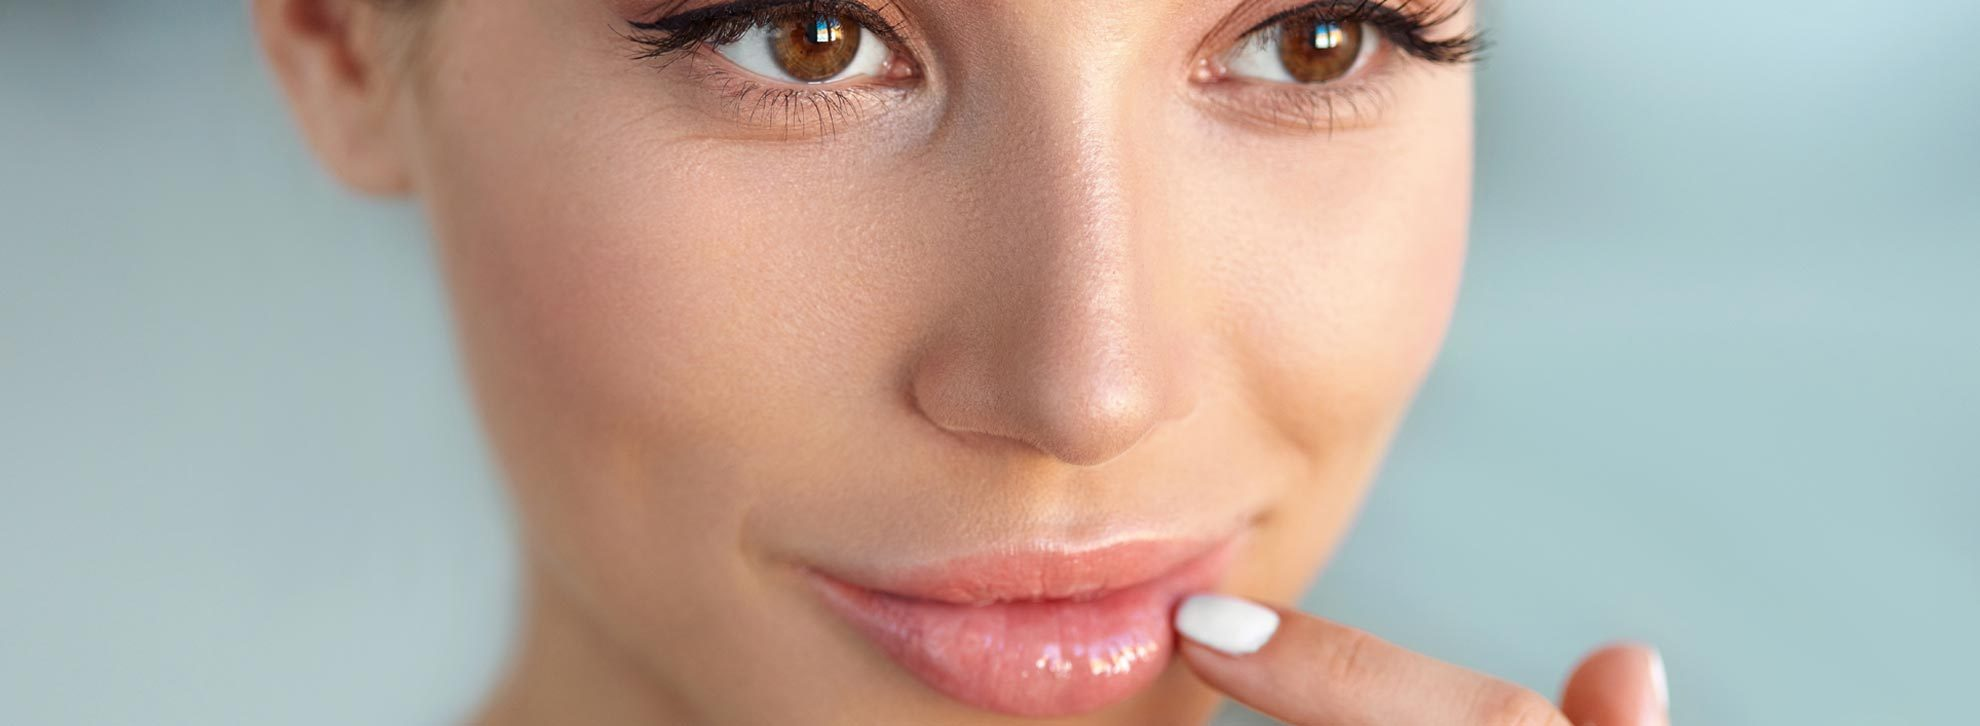 Liverpool Cosmetic Clinic - Lip treatments